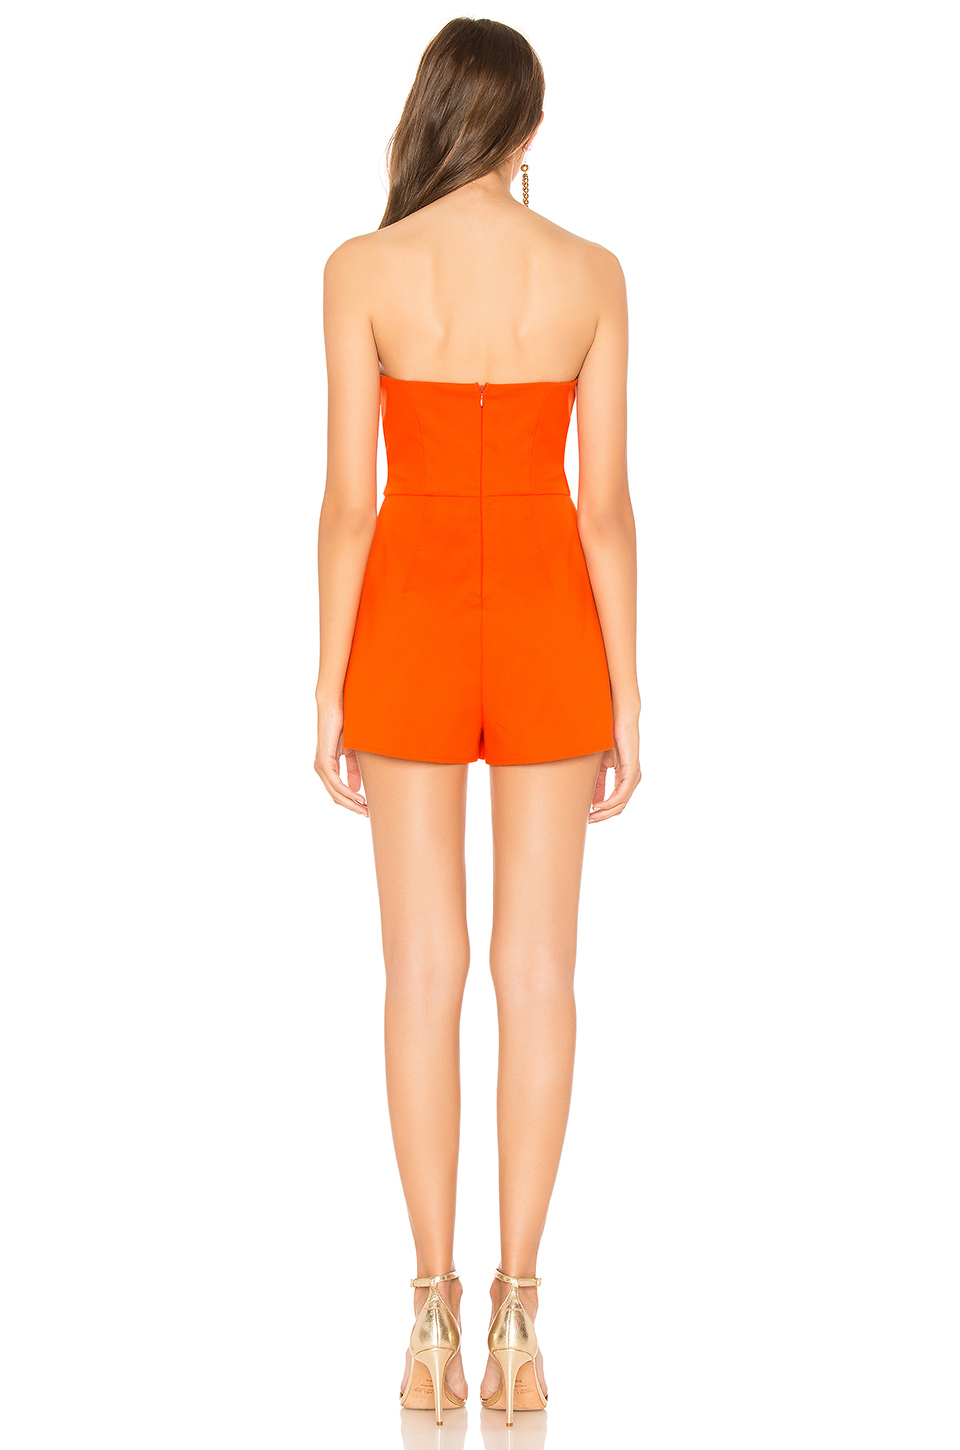 52533482510 Buy Original by the way. Shary Sweetheart Strapless Romper at ...